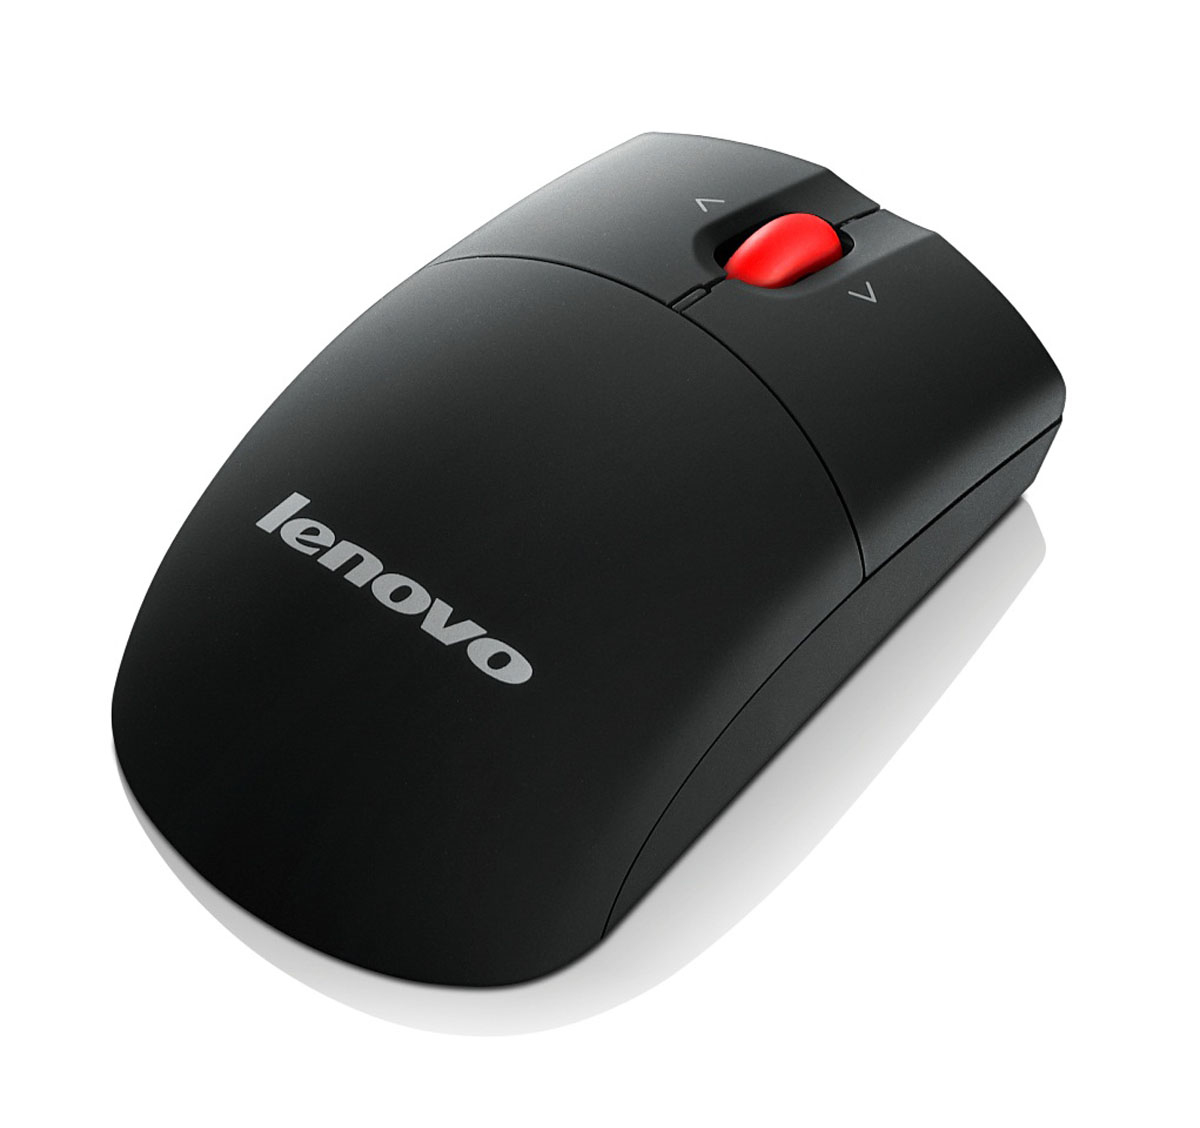 Lenovo Laser Wireless Mouse ratón RF inalámbrico 1600 DPI